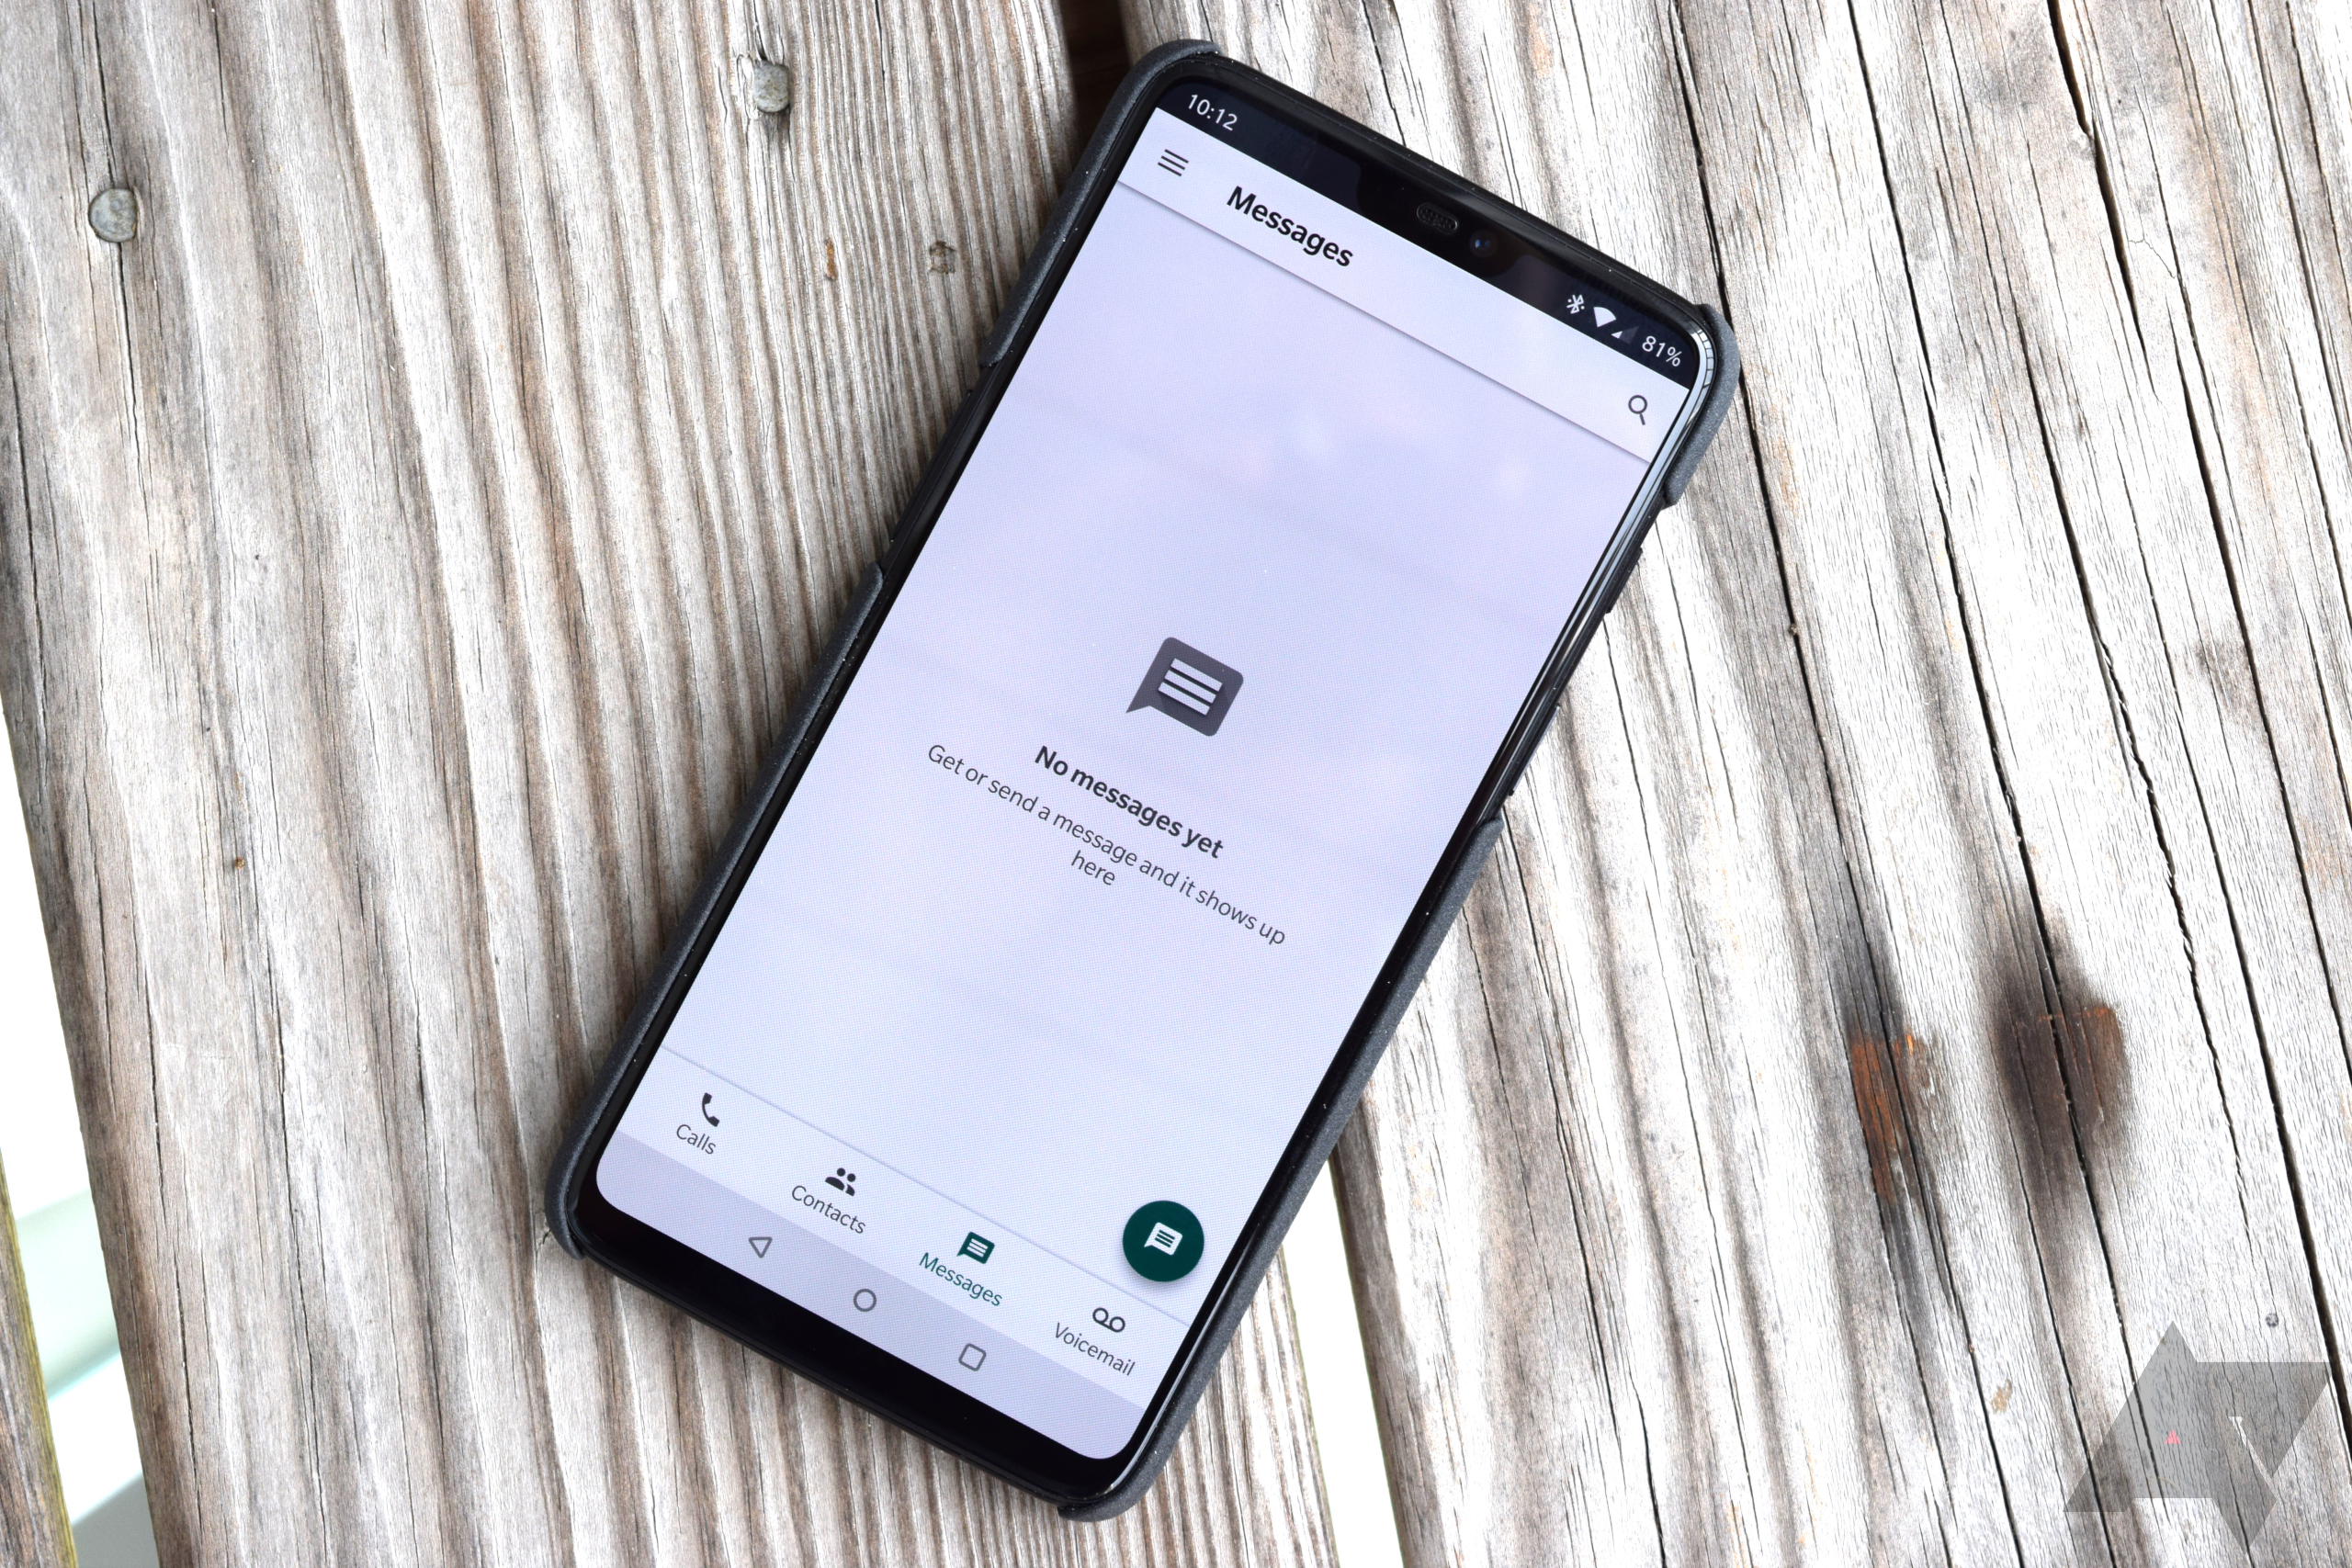 Google Voice is testing support for audio and video MMS attachments